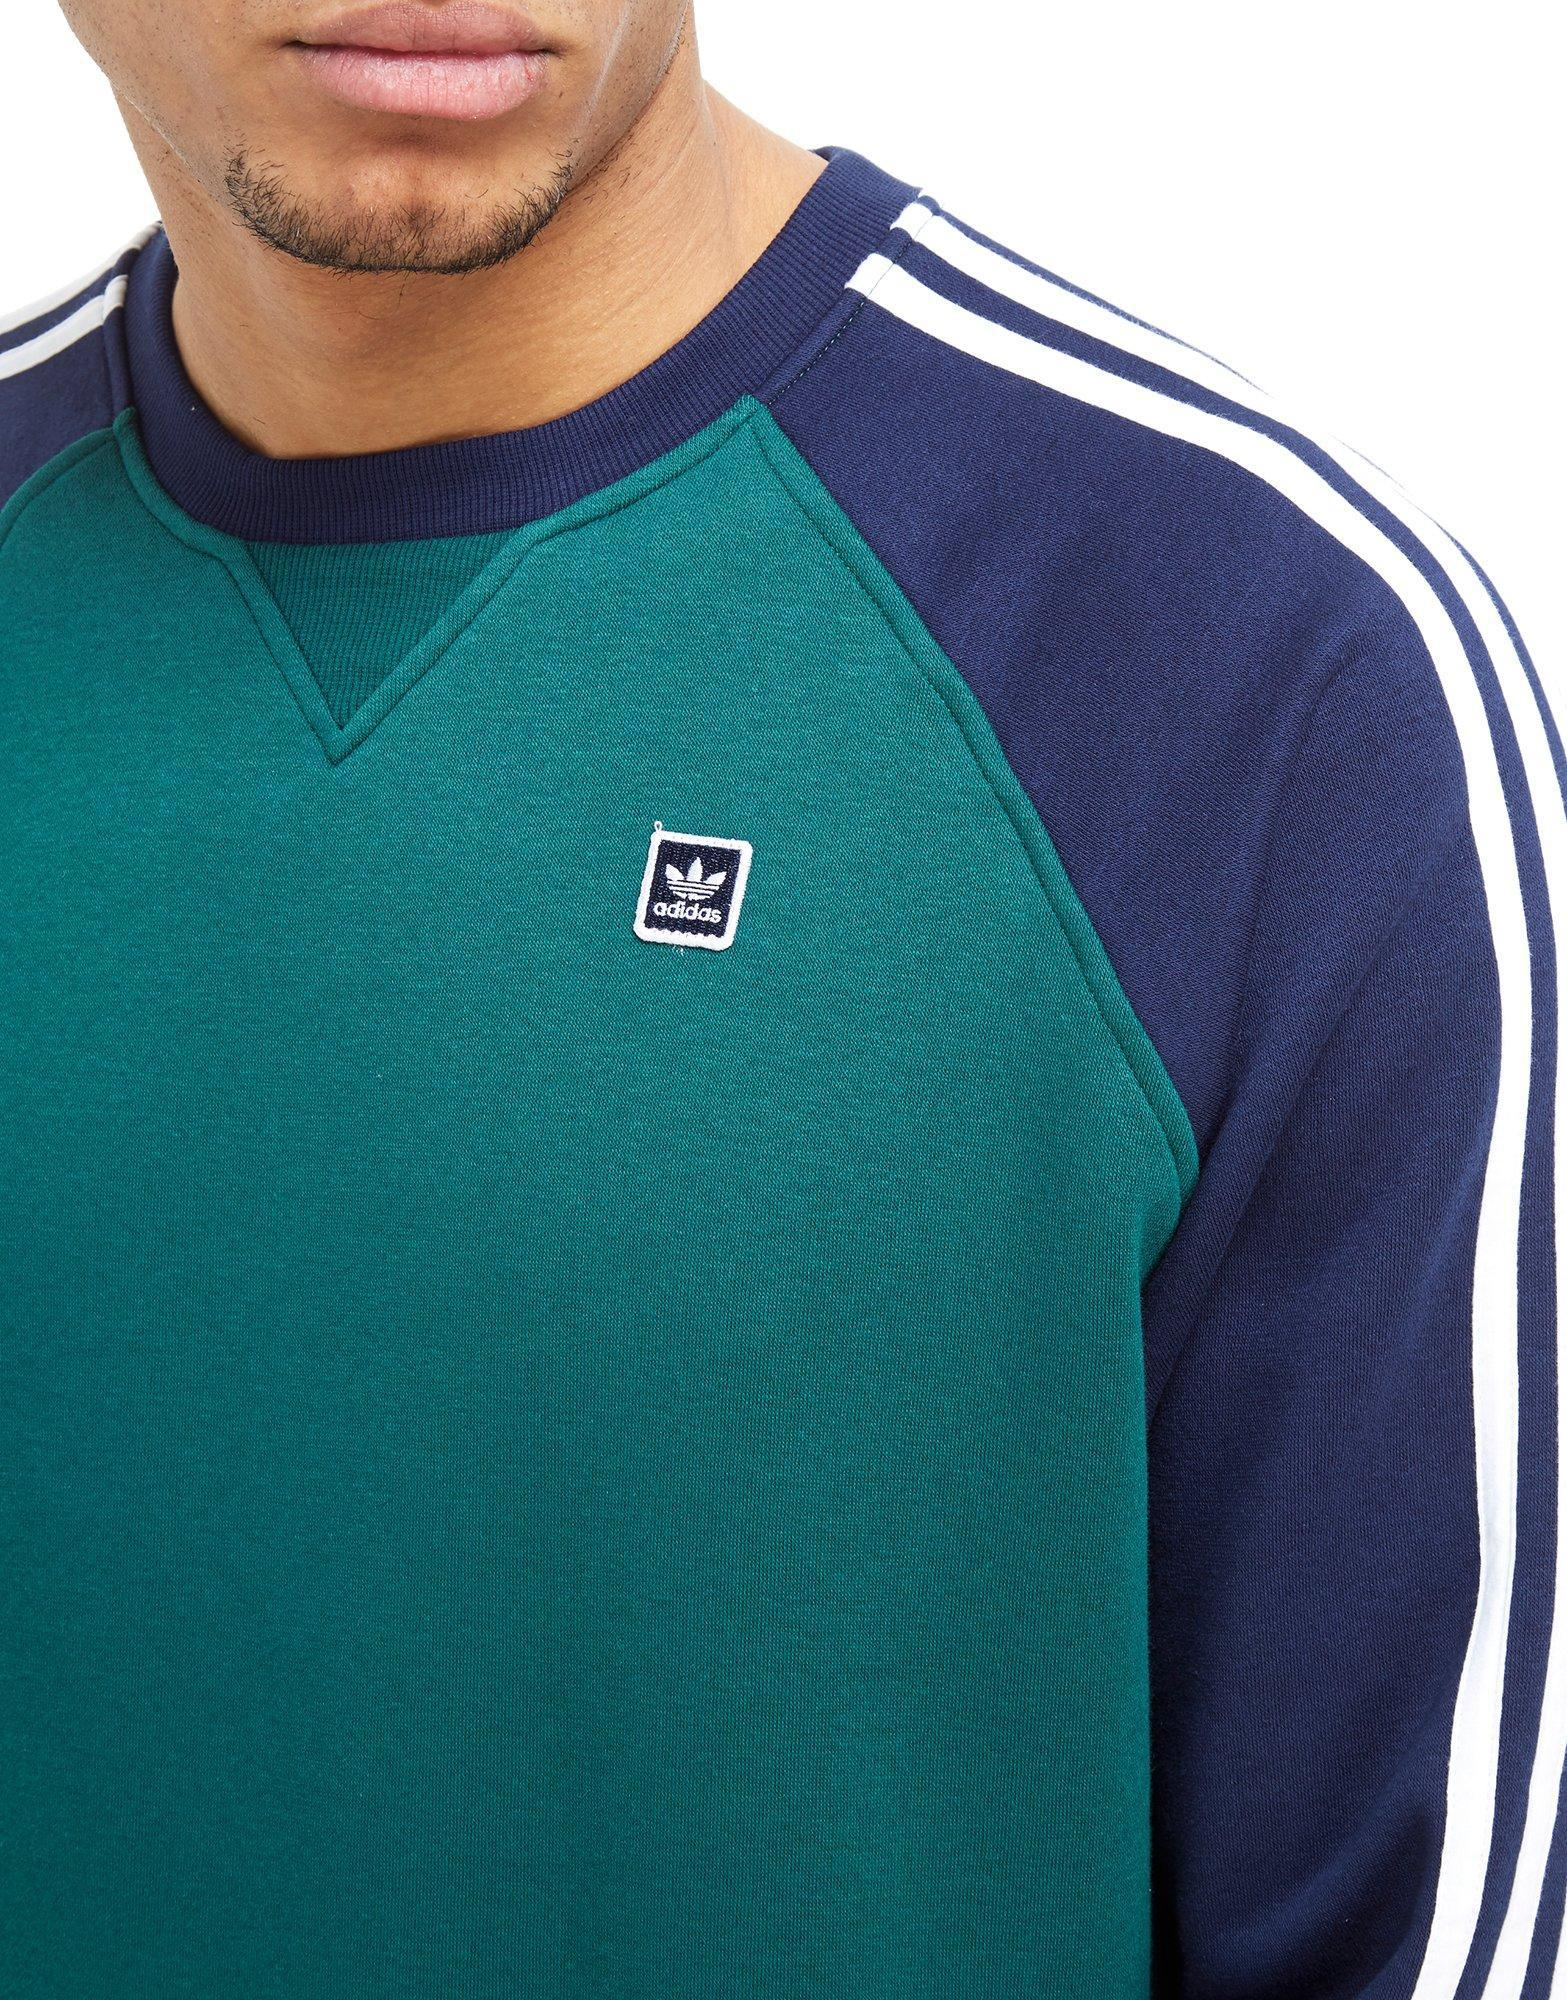 Raglan Originals Crew Sweatshirt Men For Adidas Skateboarding Blue 35Sc4RjAqL